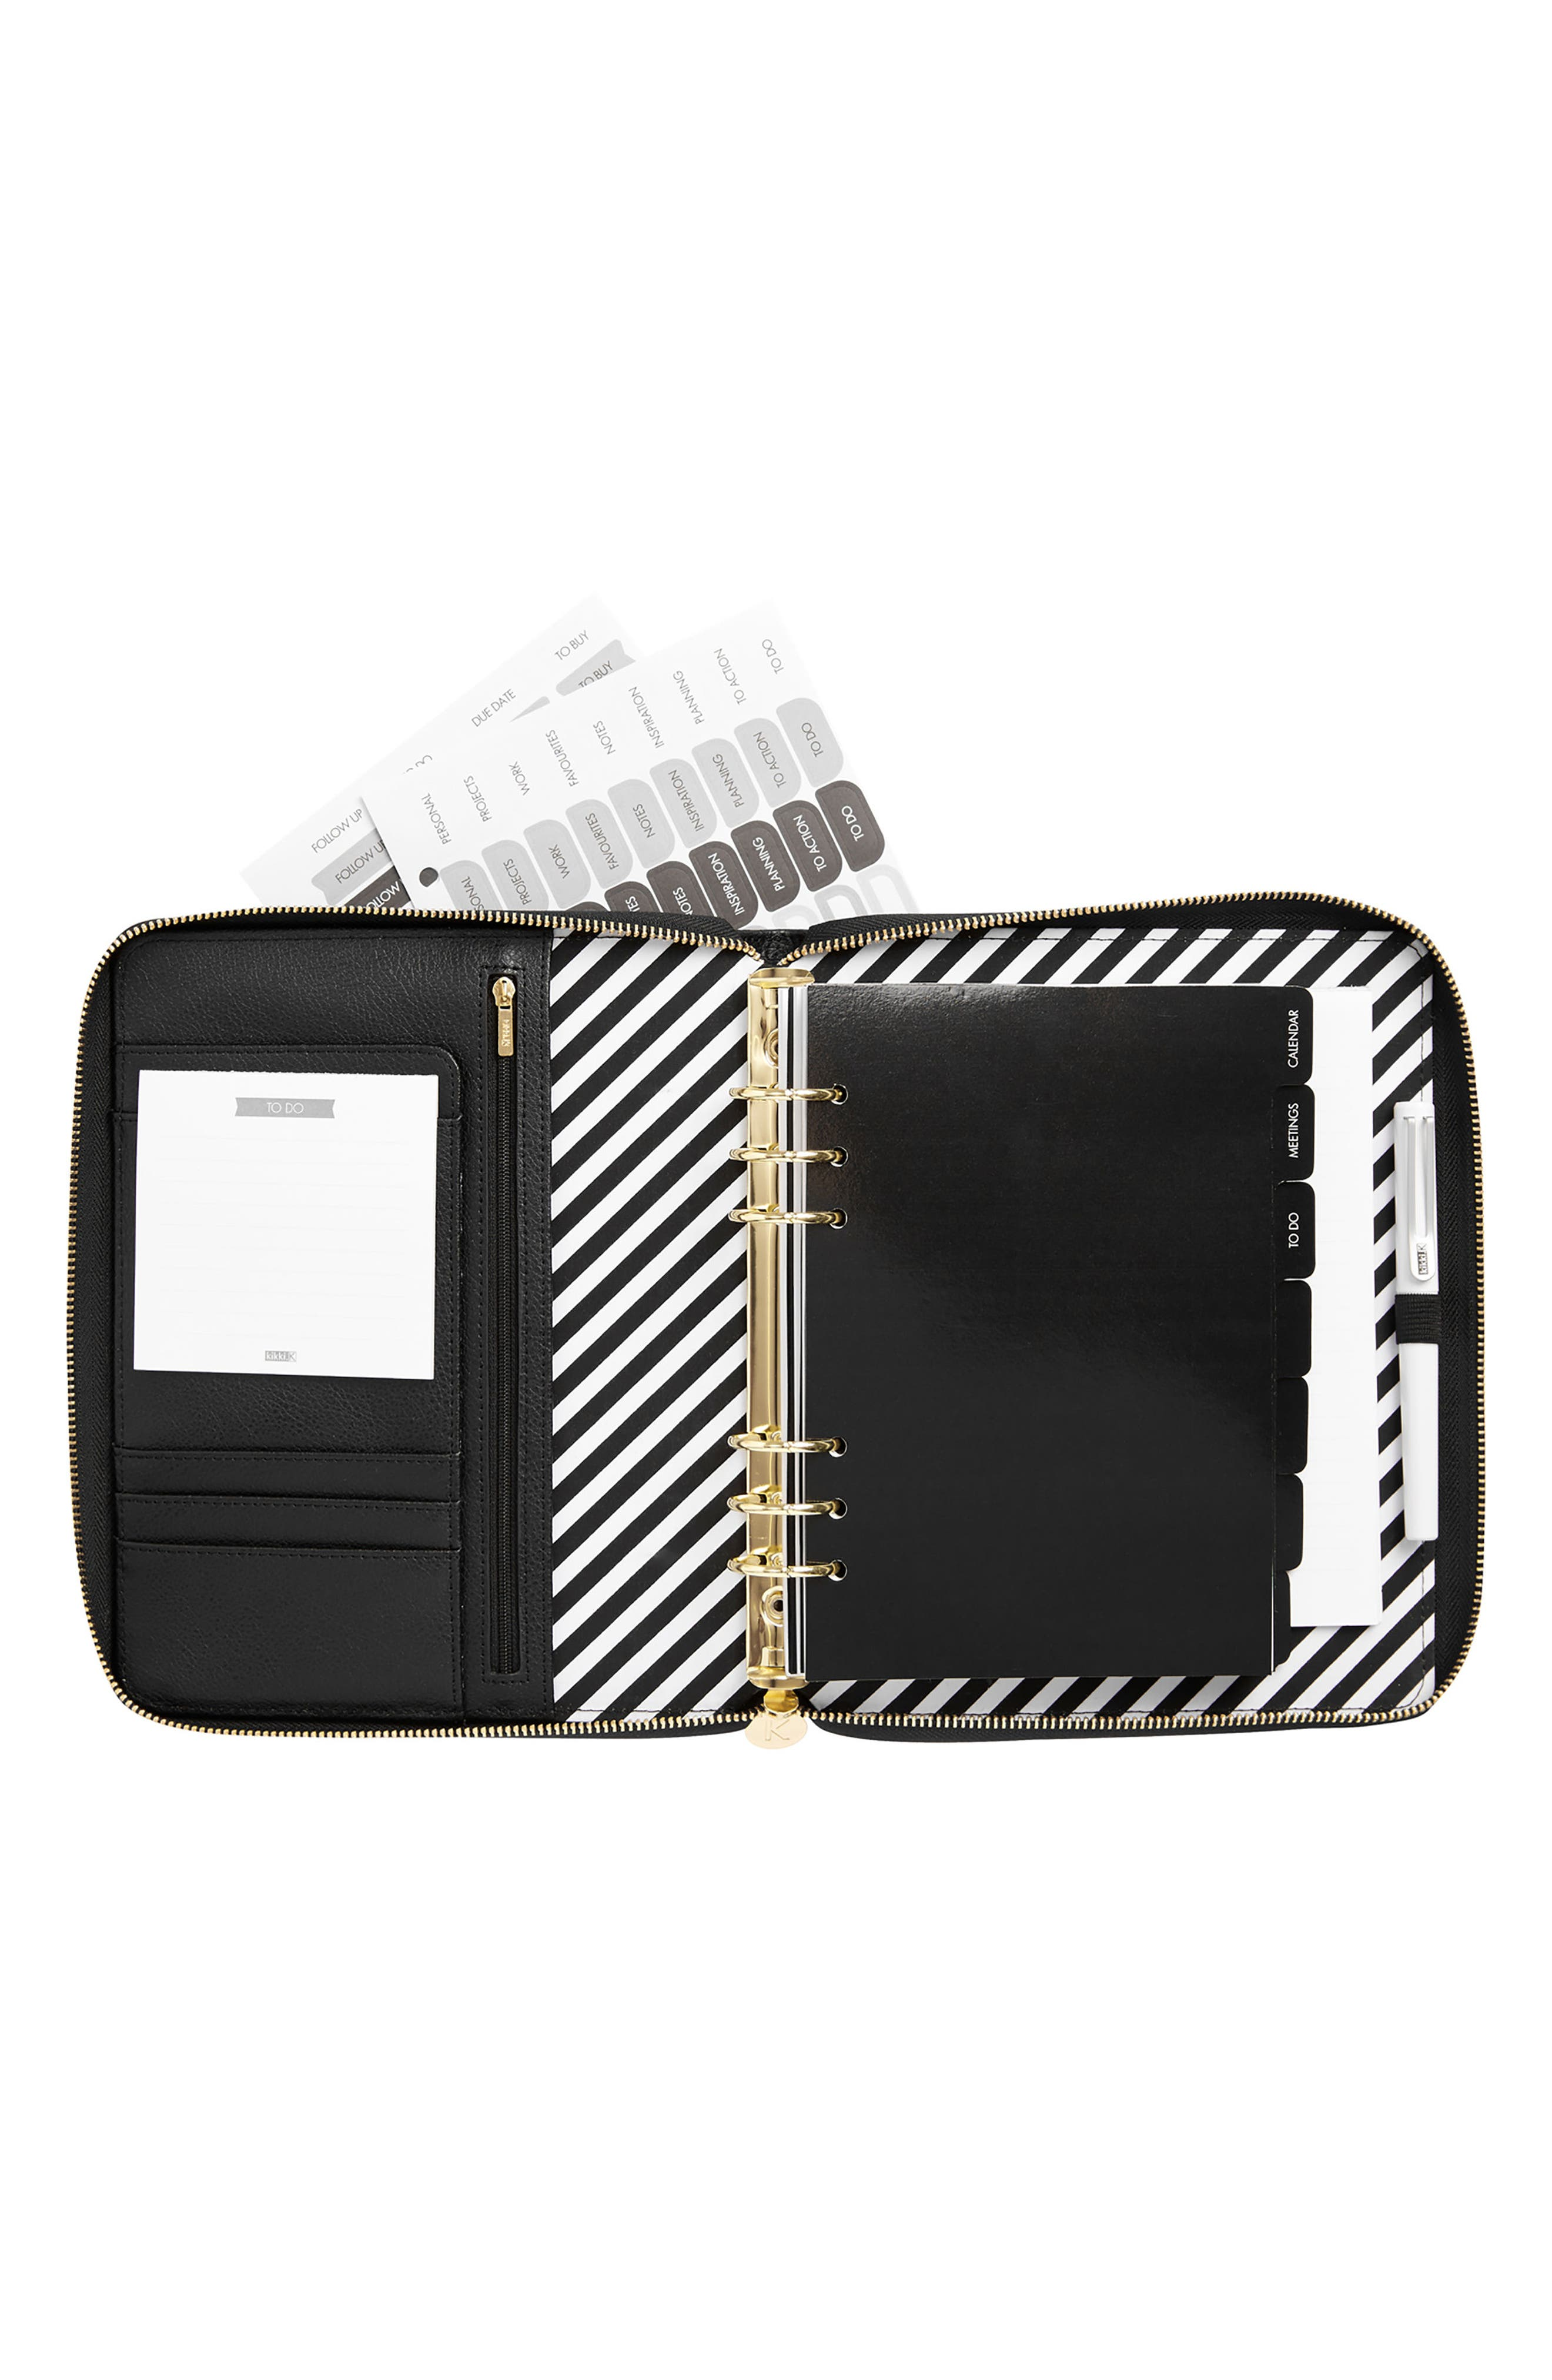 Zip-Around Leather 18-Month Perpetual Planner,                             Alternate thumbnail 4, color,                             JET BLACK LARGE